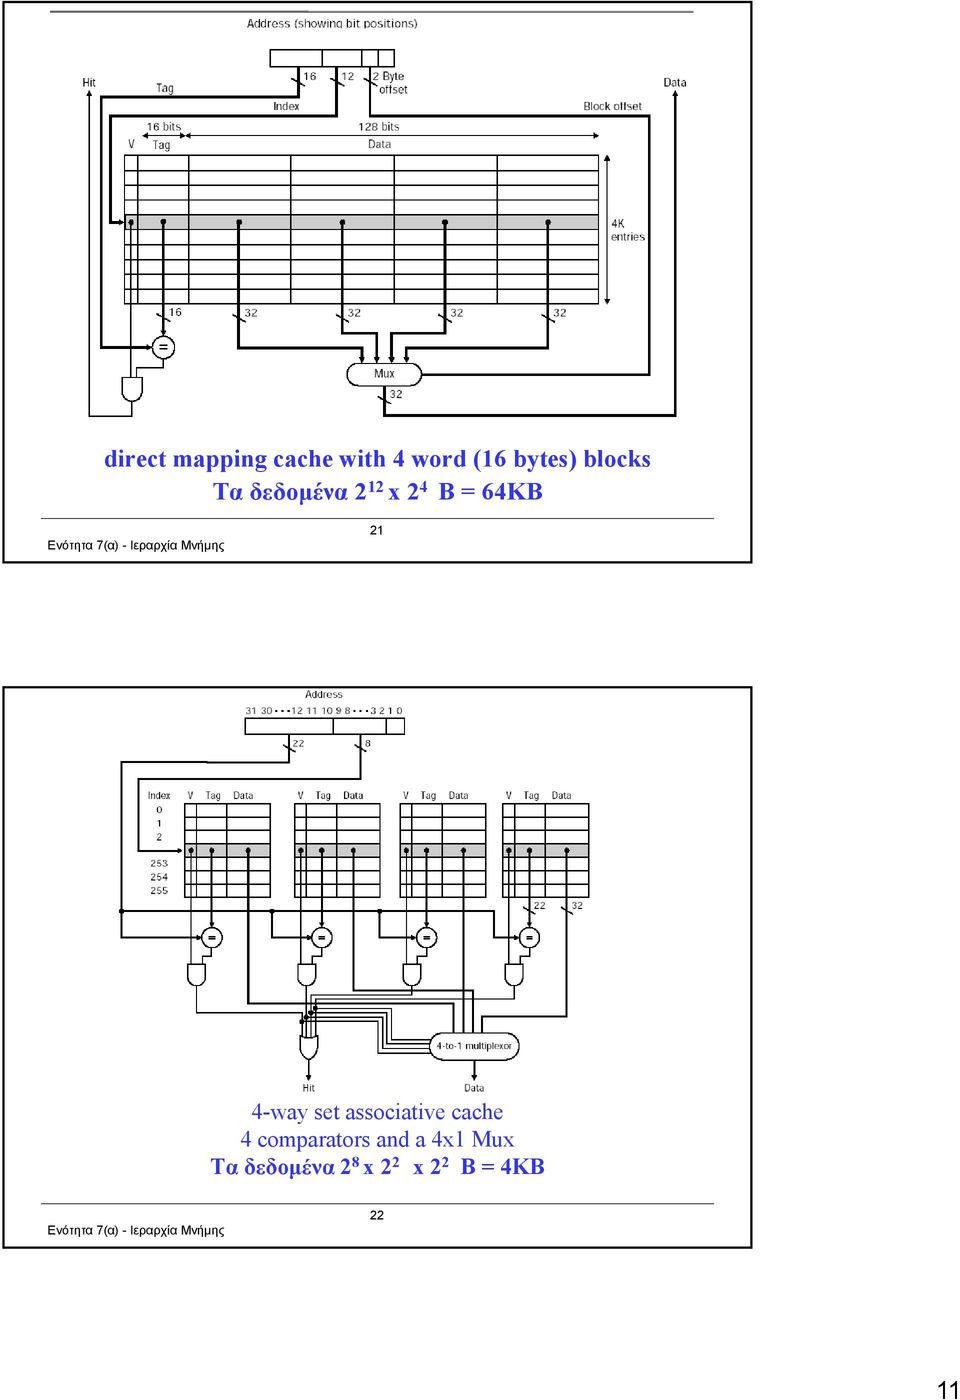 4-way set associative cache 4 comparators and